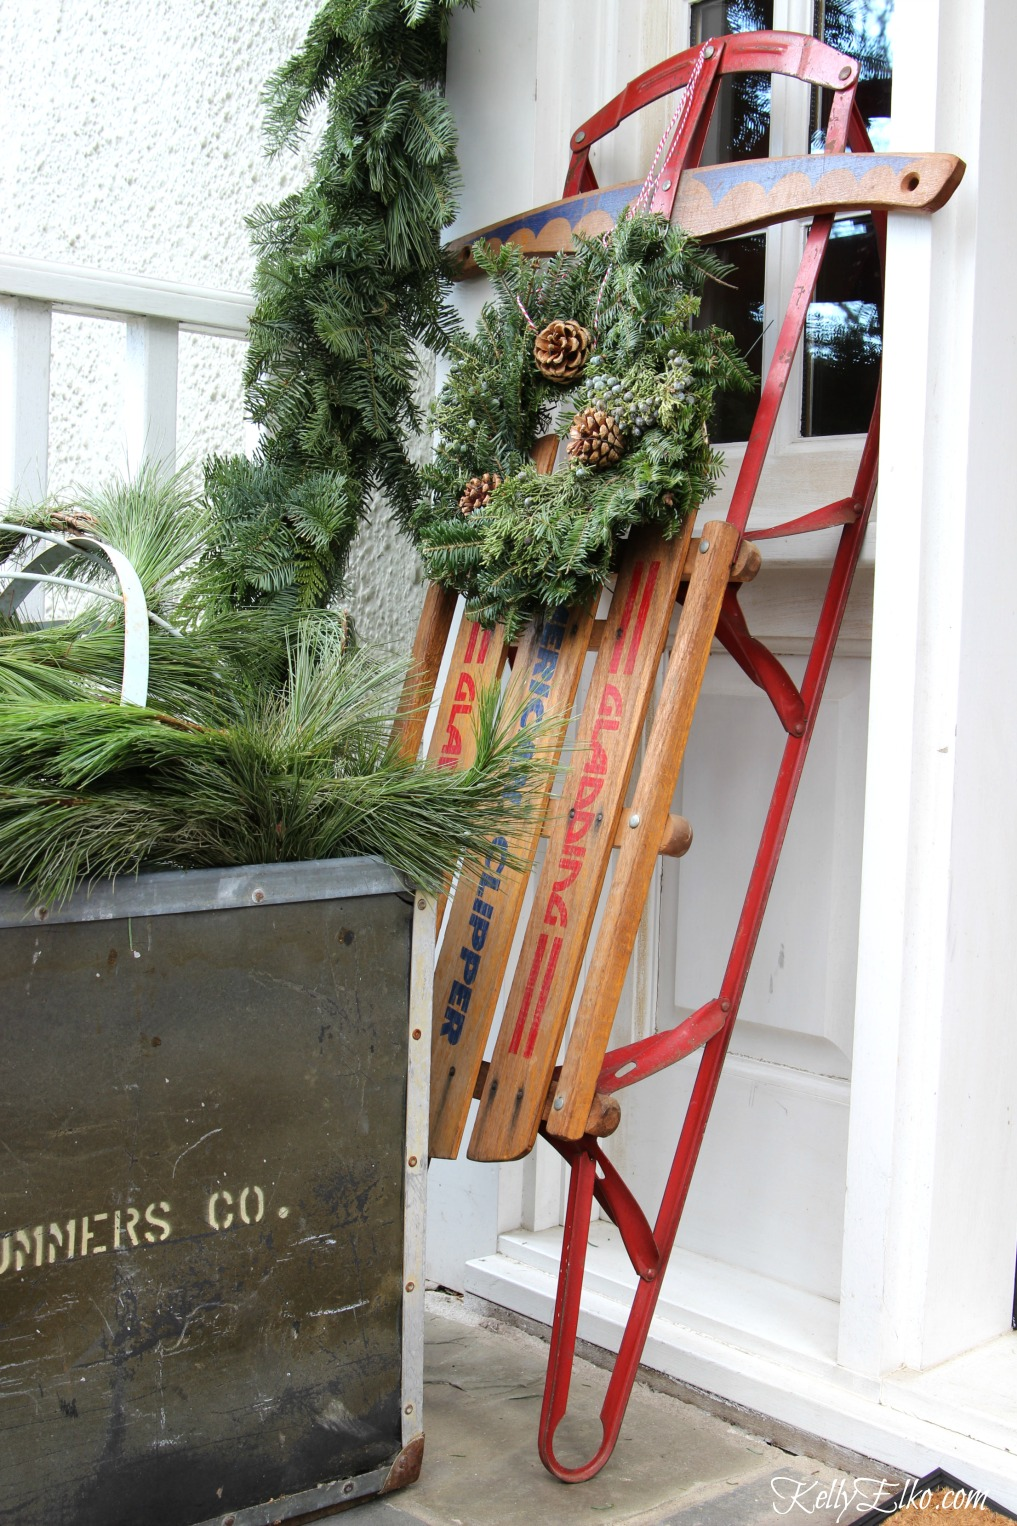 Vintage wood sled with wreath on this welcoming Christmas porch kellyelko.com